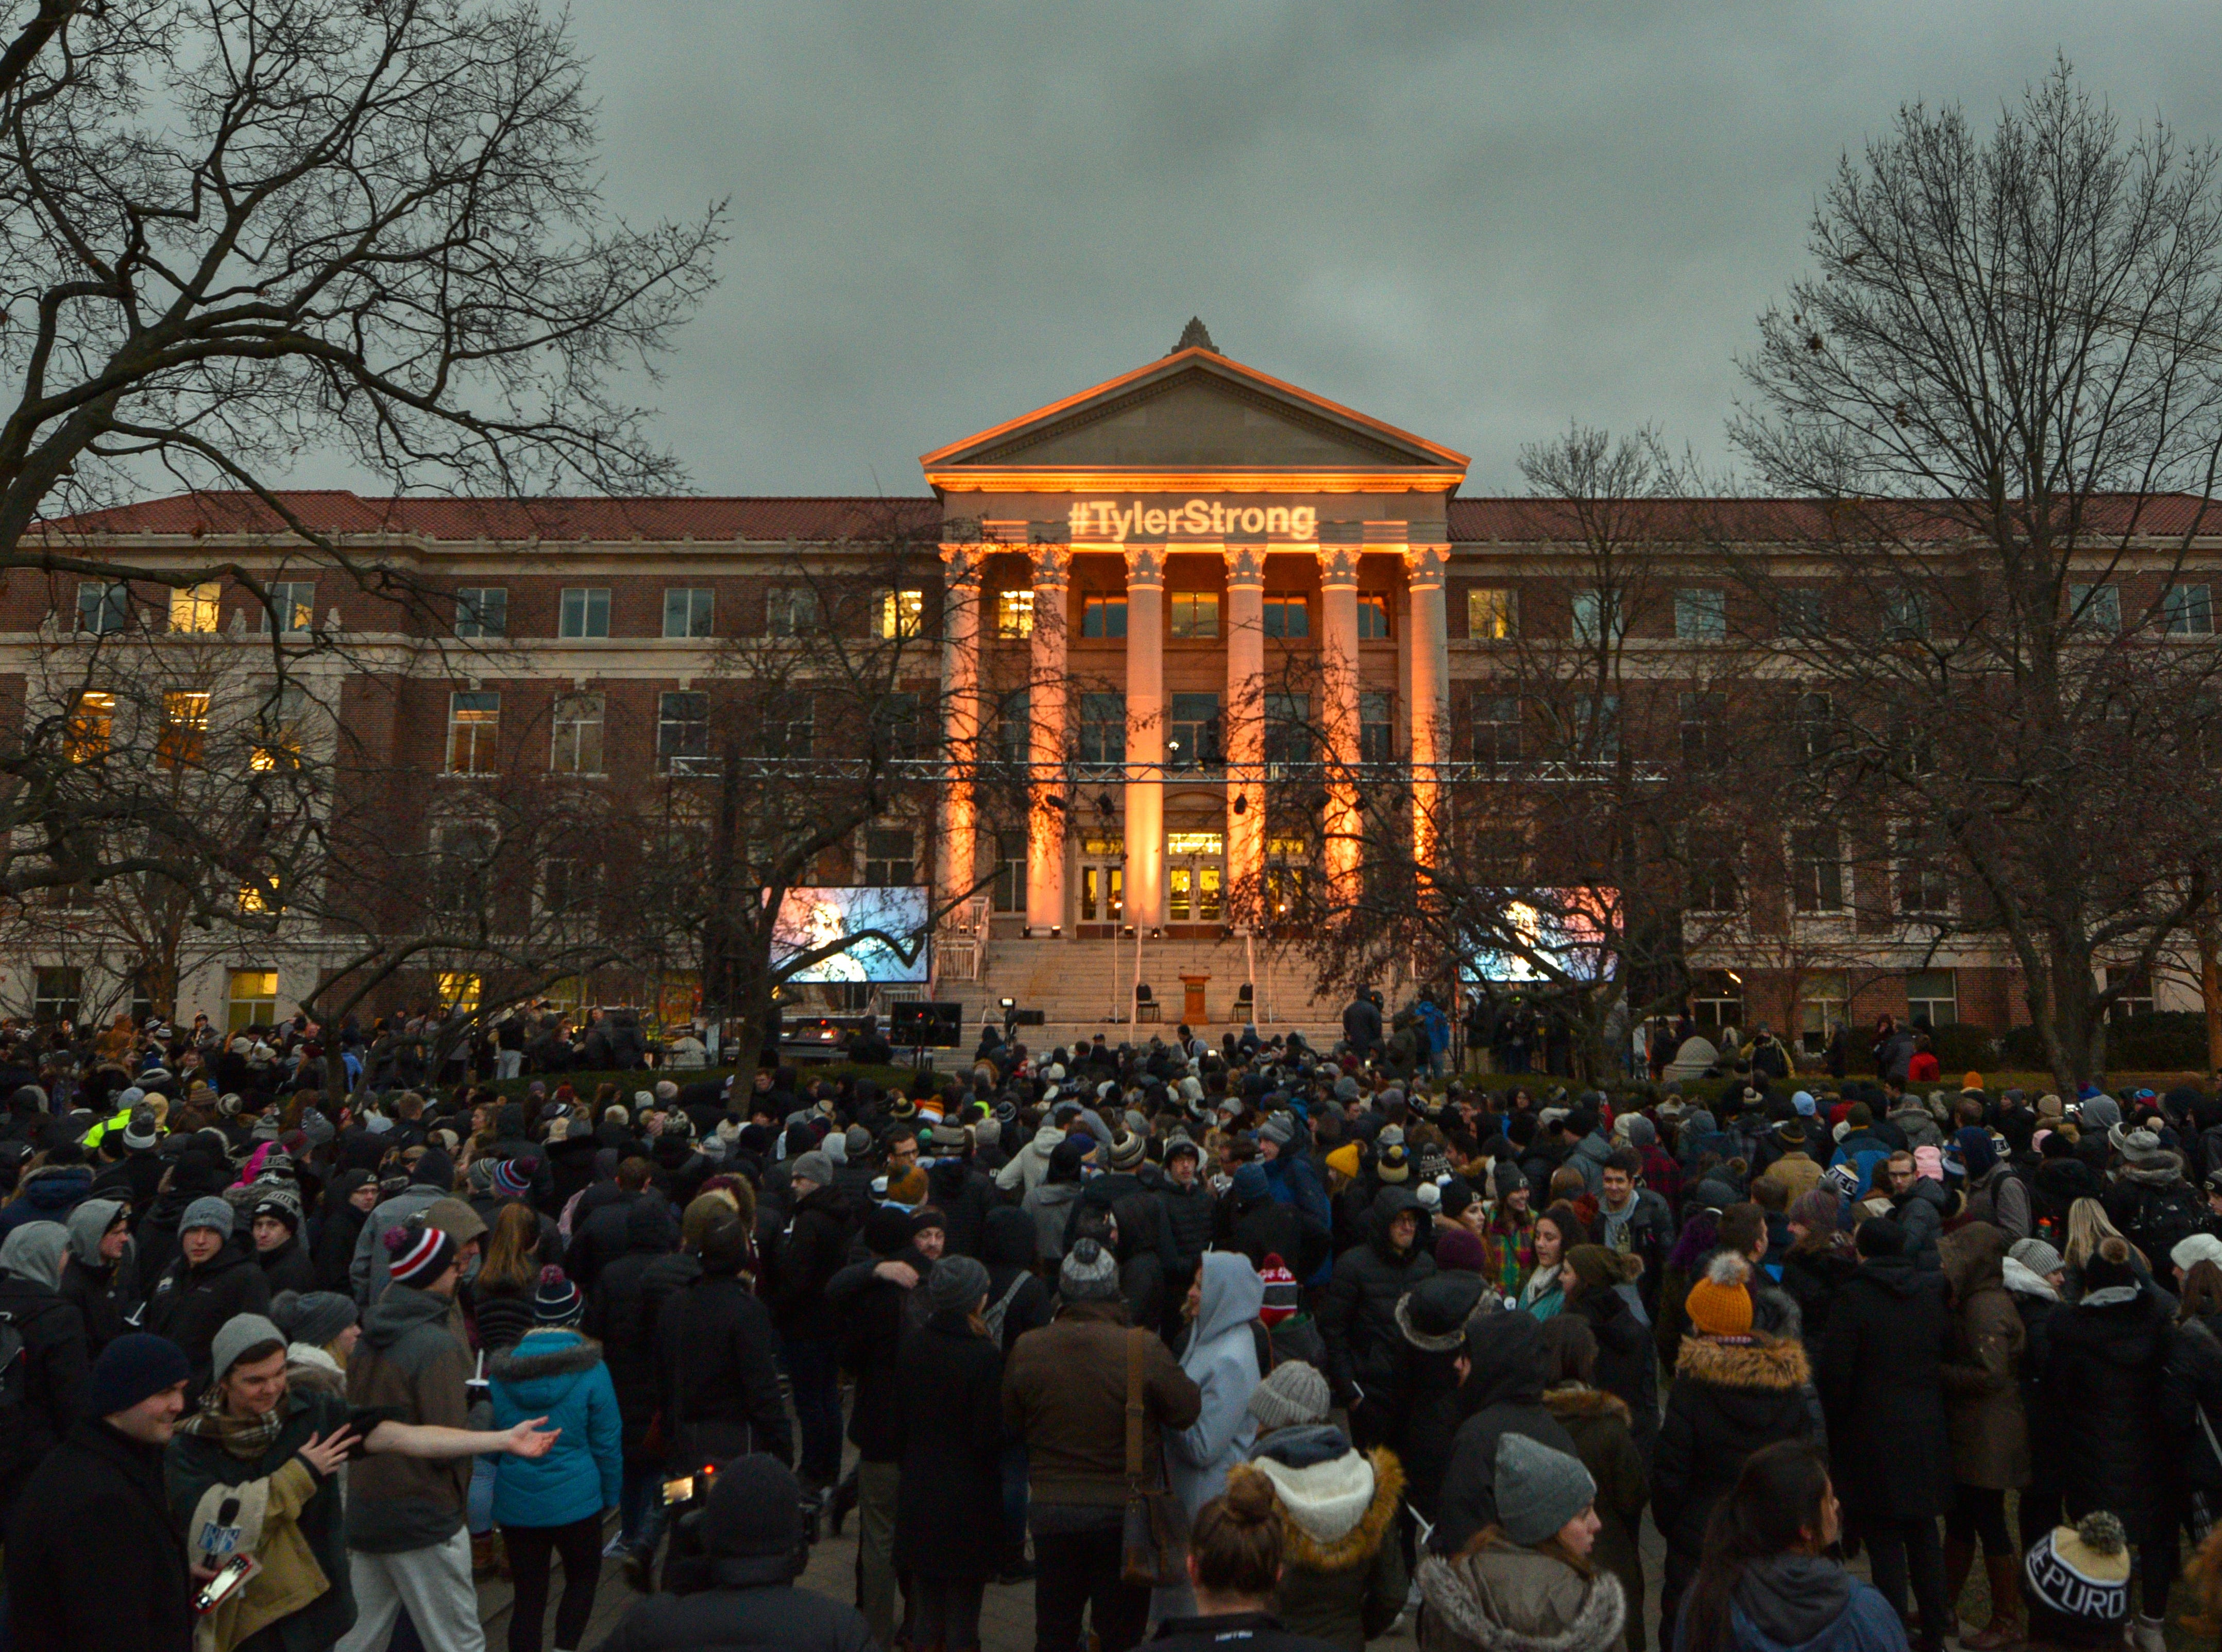 Purdue University police estimated a crowd of 2,000 attended a memorial service and candlelight vigil for Tyler Trent at Purdue University in West Lafayette on January 9, 2019.